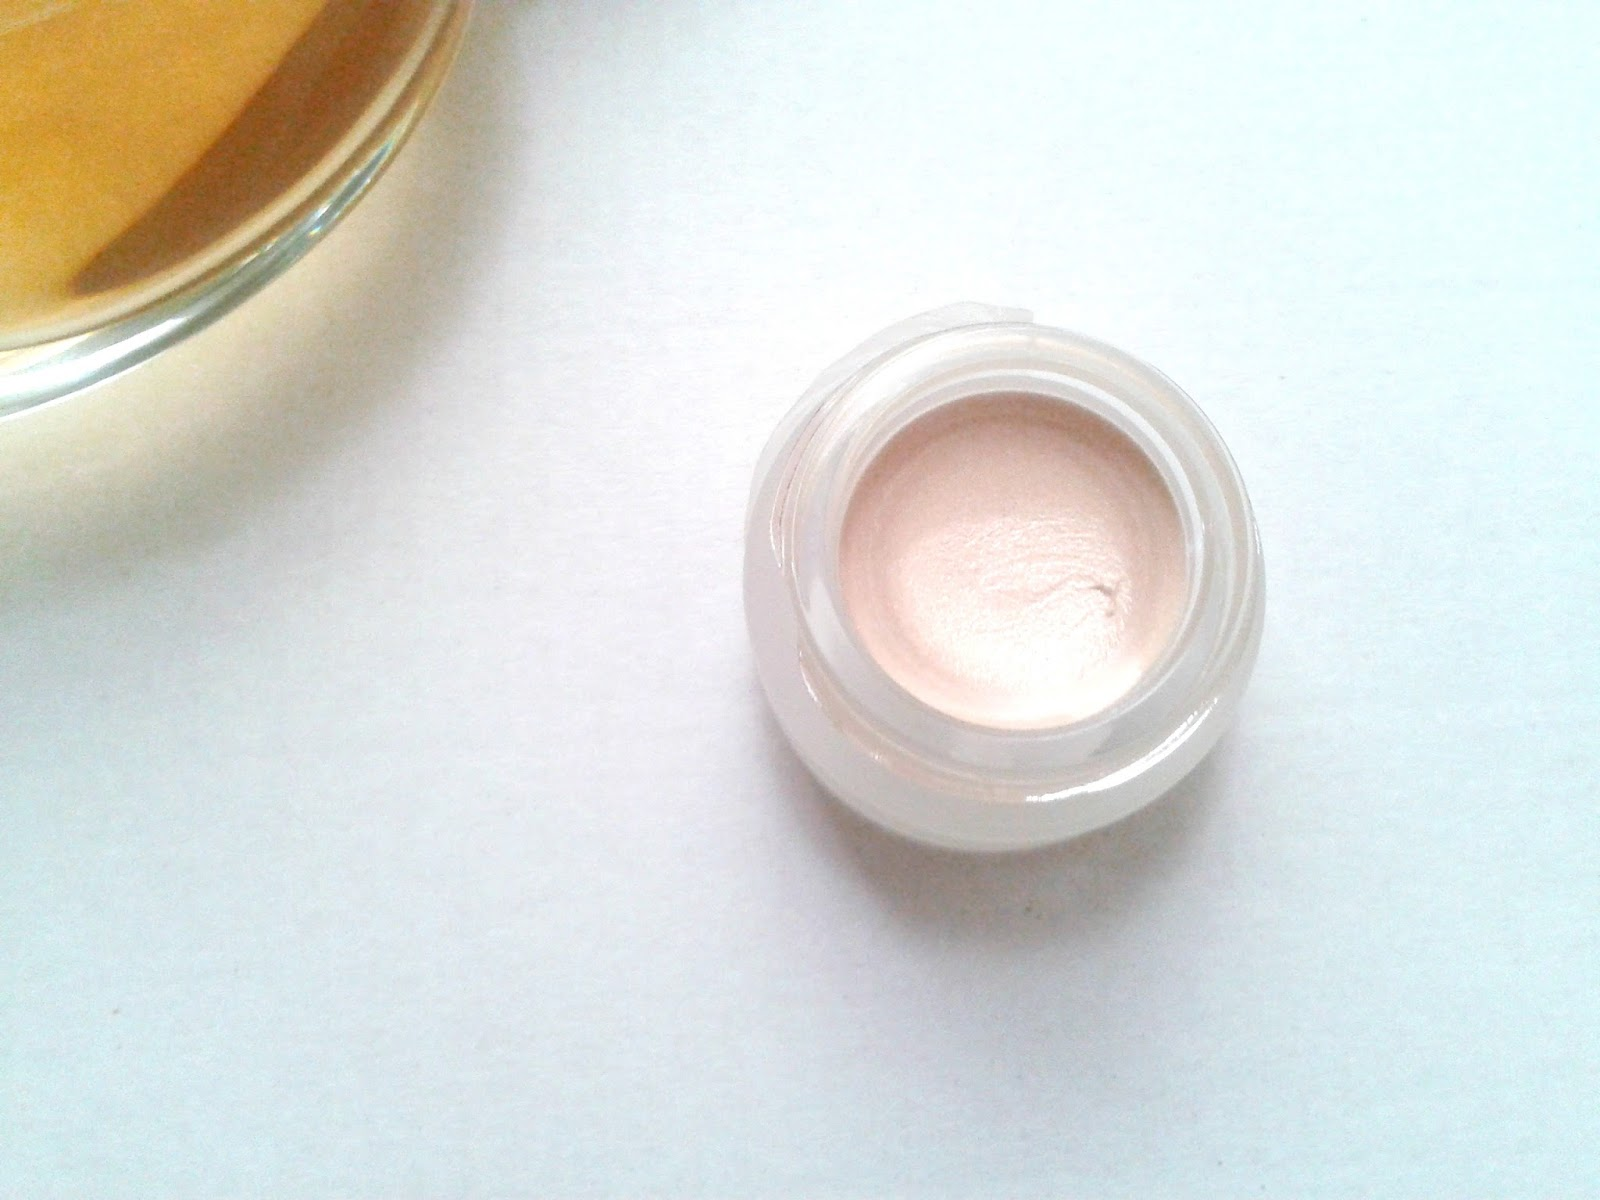 A picture showing the consistency of Topshop Highlighter